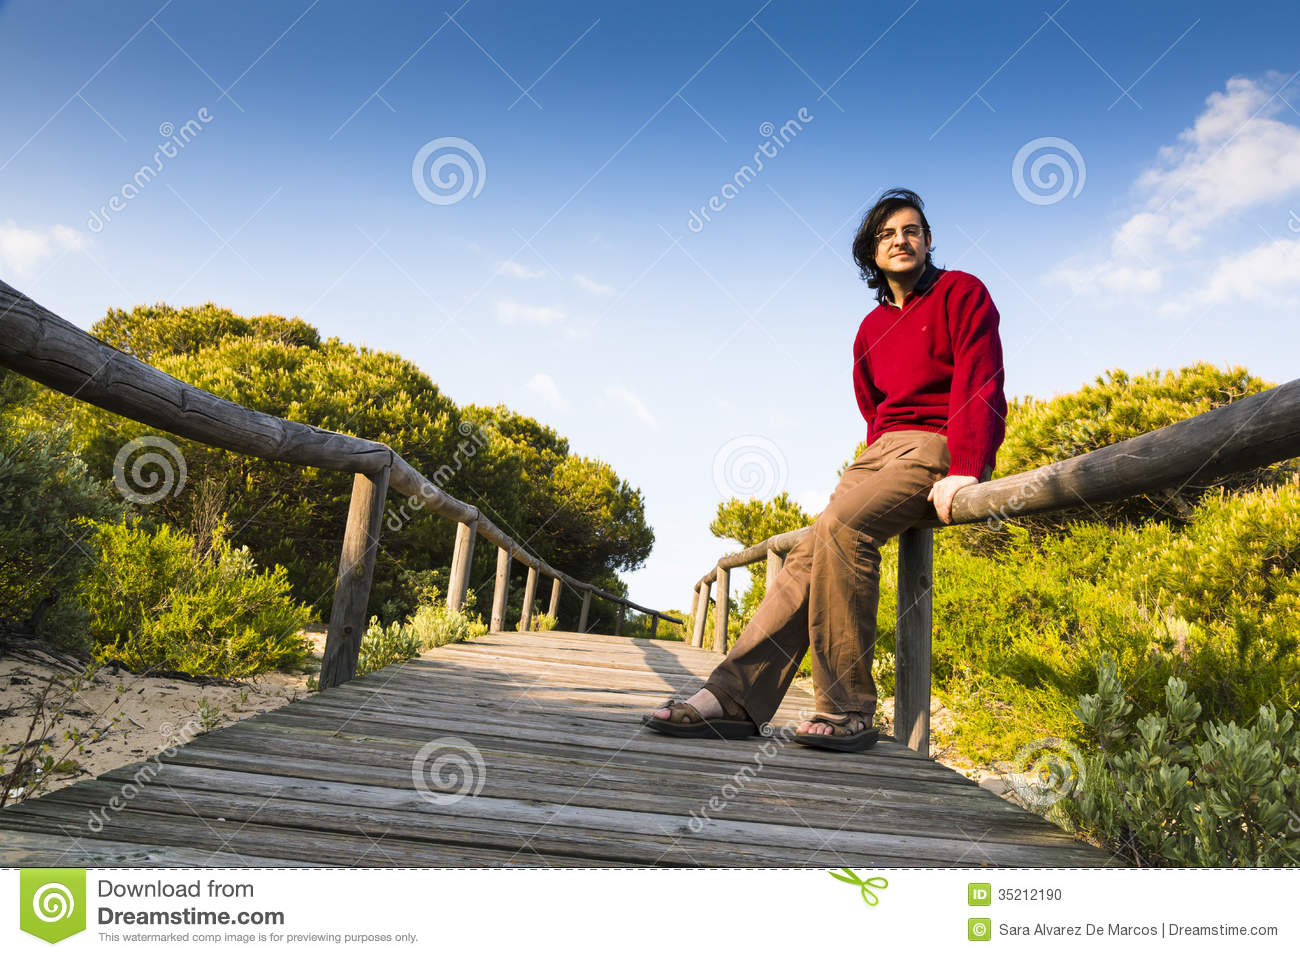 Man sitting on a coastal boardwalk